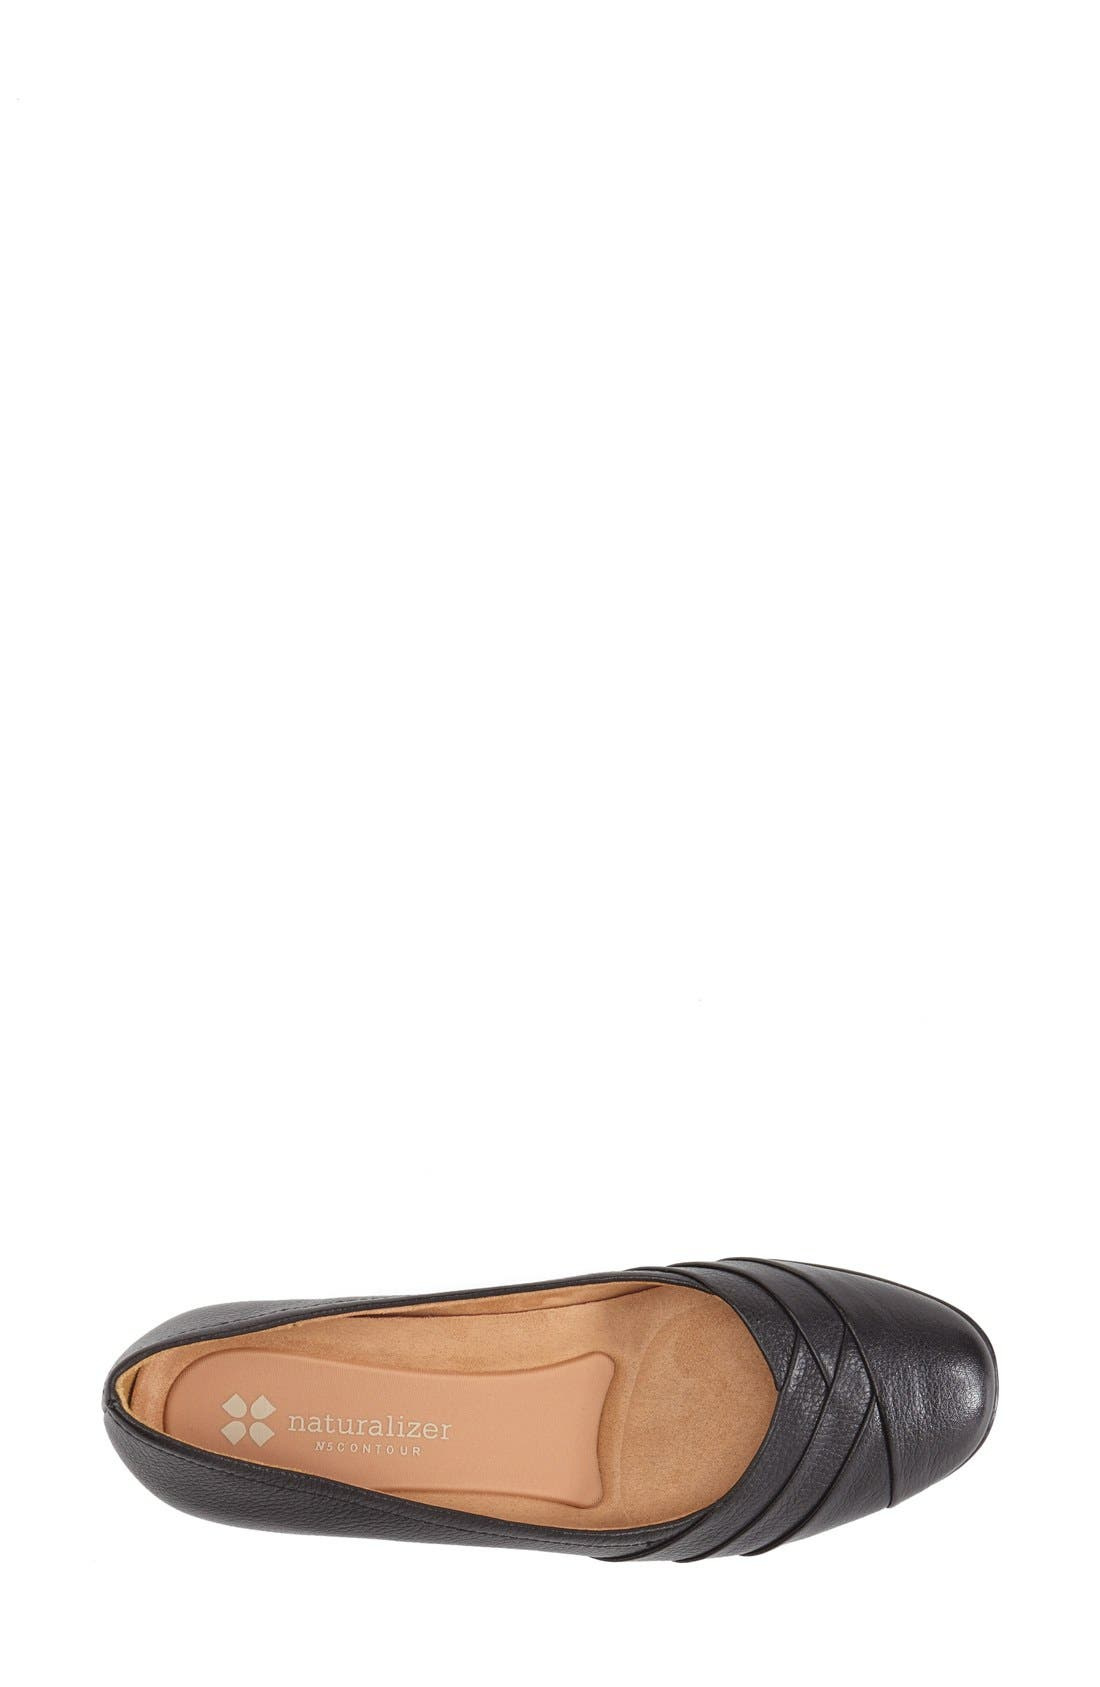 NATURALIZER,                             'Jaye' Ballet Flat,                             Alternate thumbnail 3, color,                             001